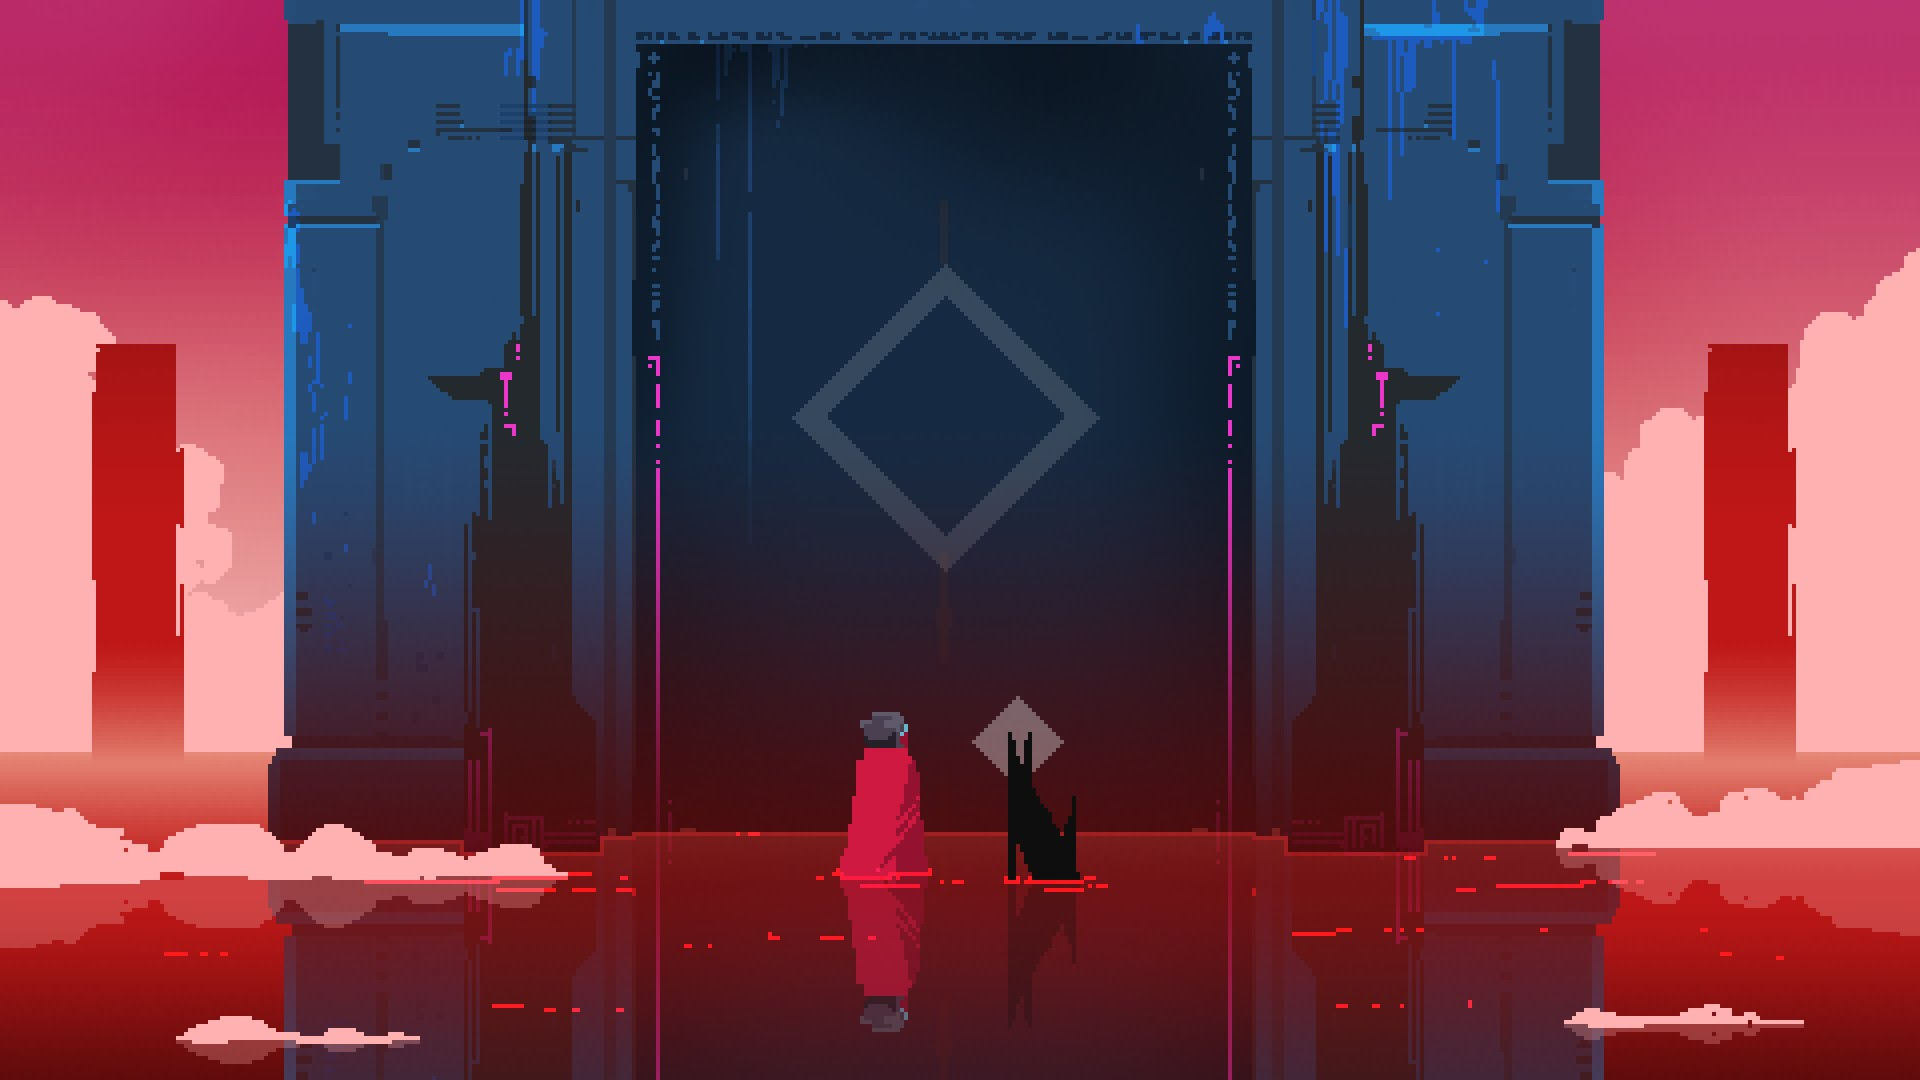 Hyper Light Drifter Hd Wallpapers 7wallpapers Net